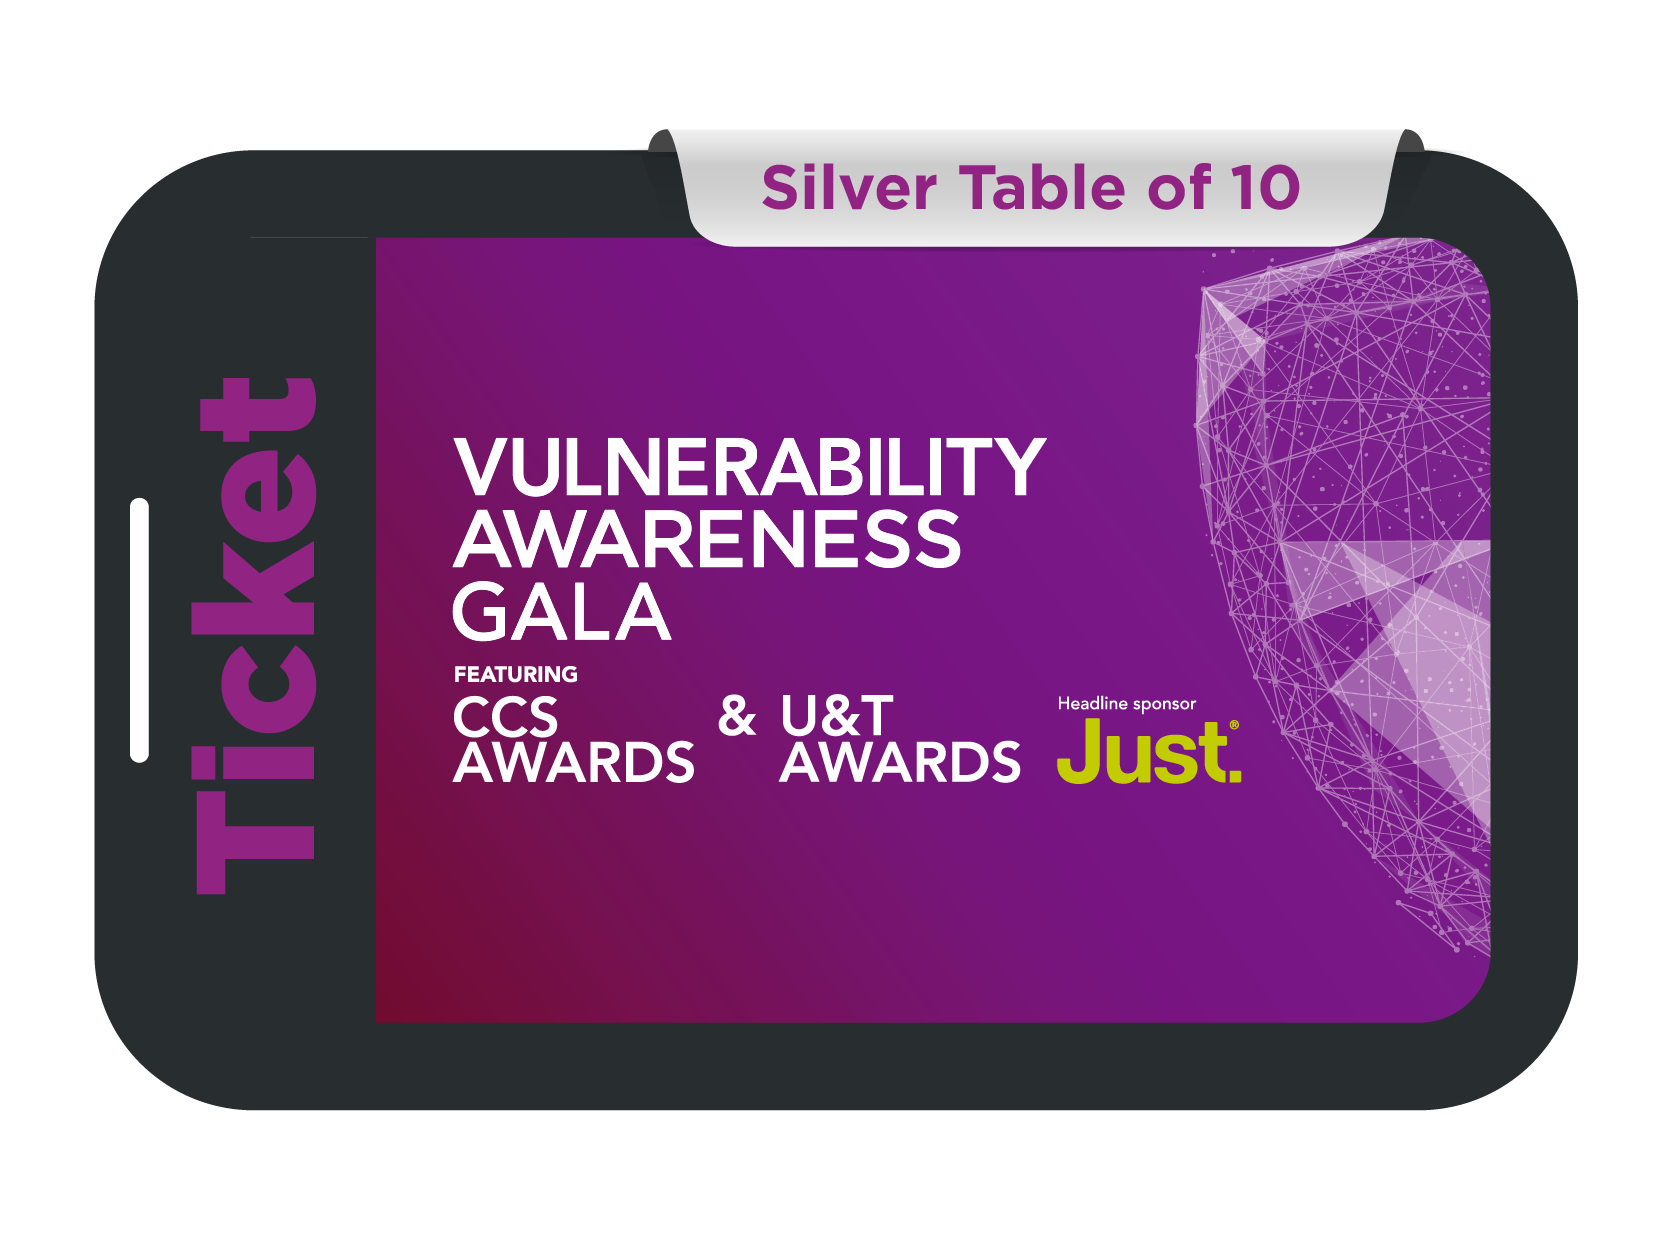 Silver Table of 10 - Vulnerability Awareness Gala feat. CCS and U&T Awards 2021